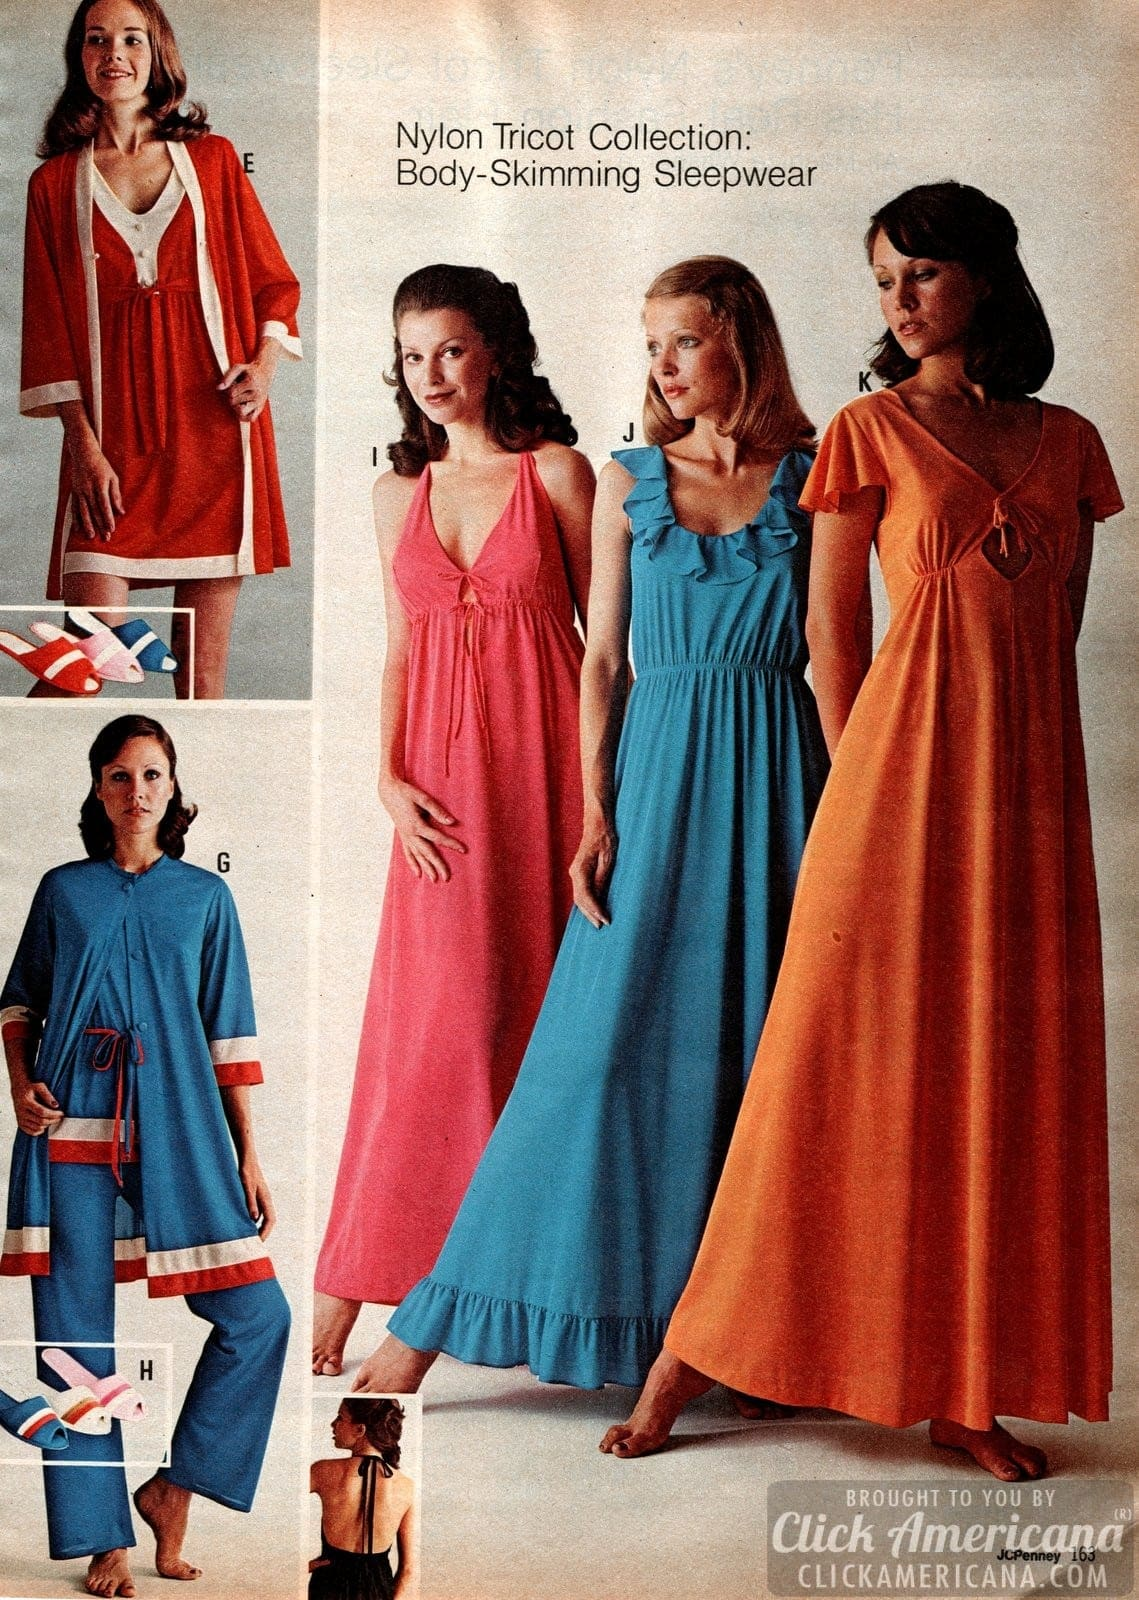 Retro 70s sleepwear for women (5)